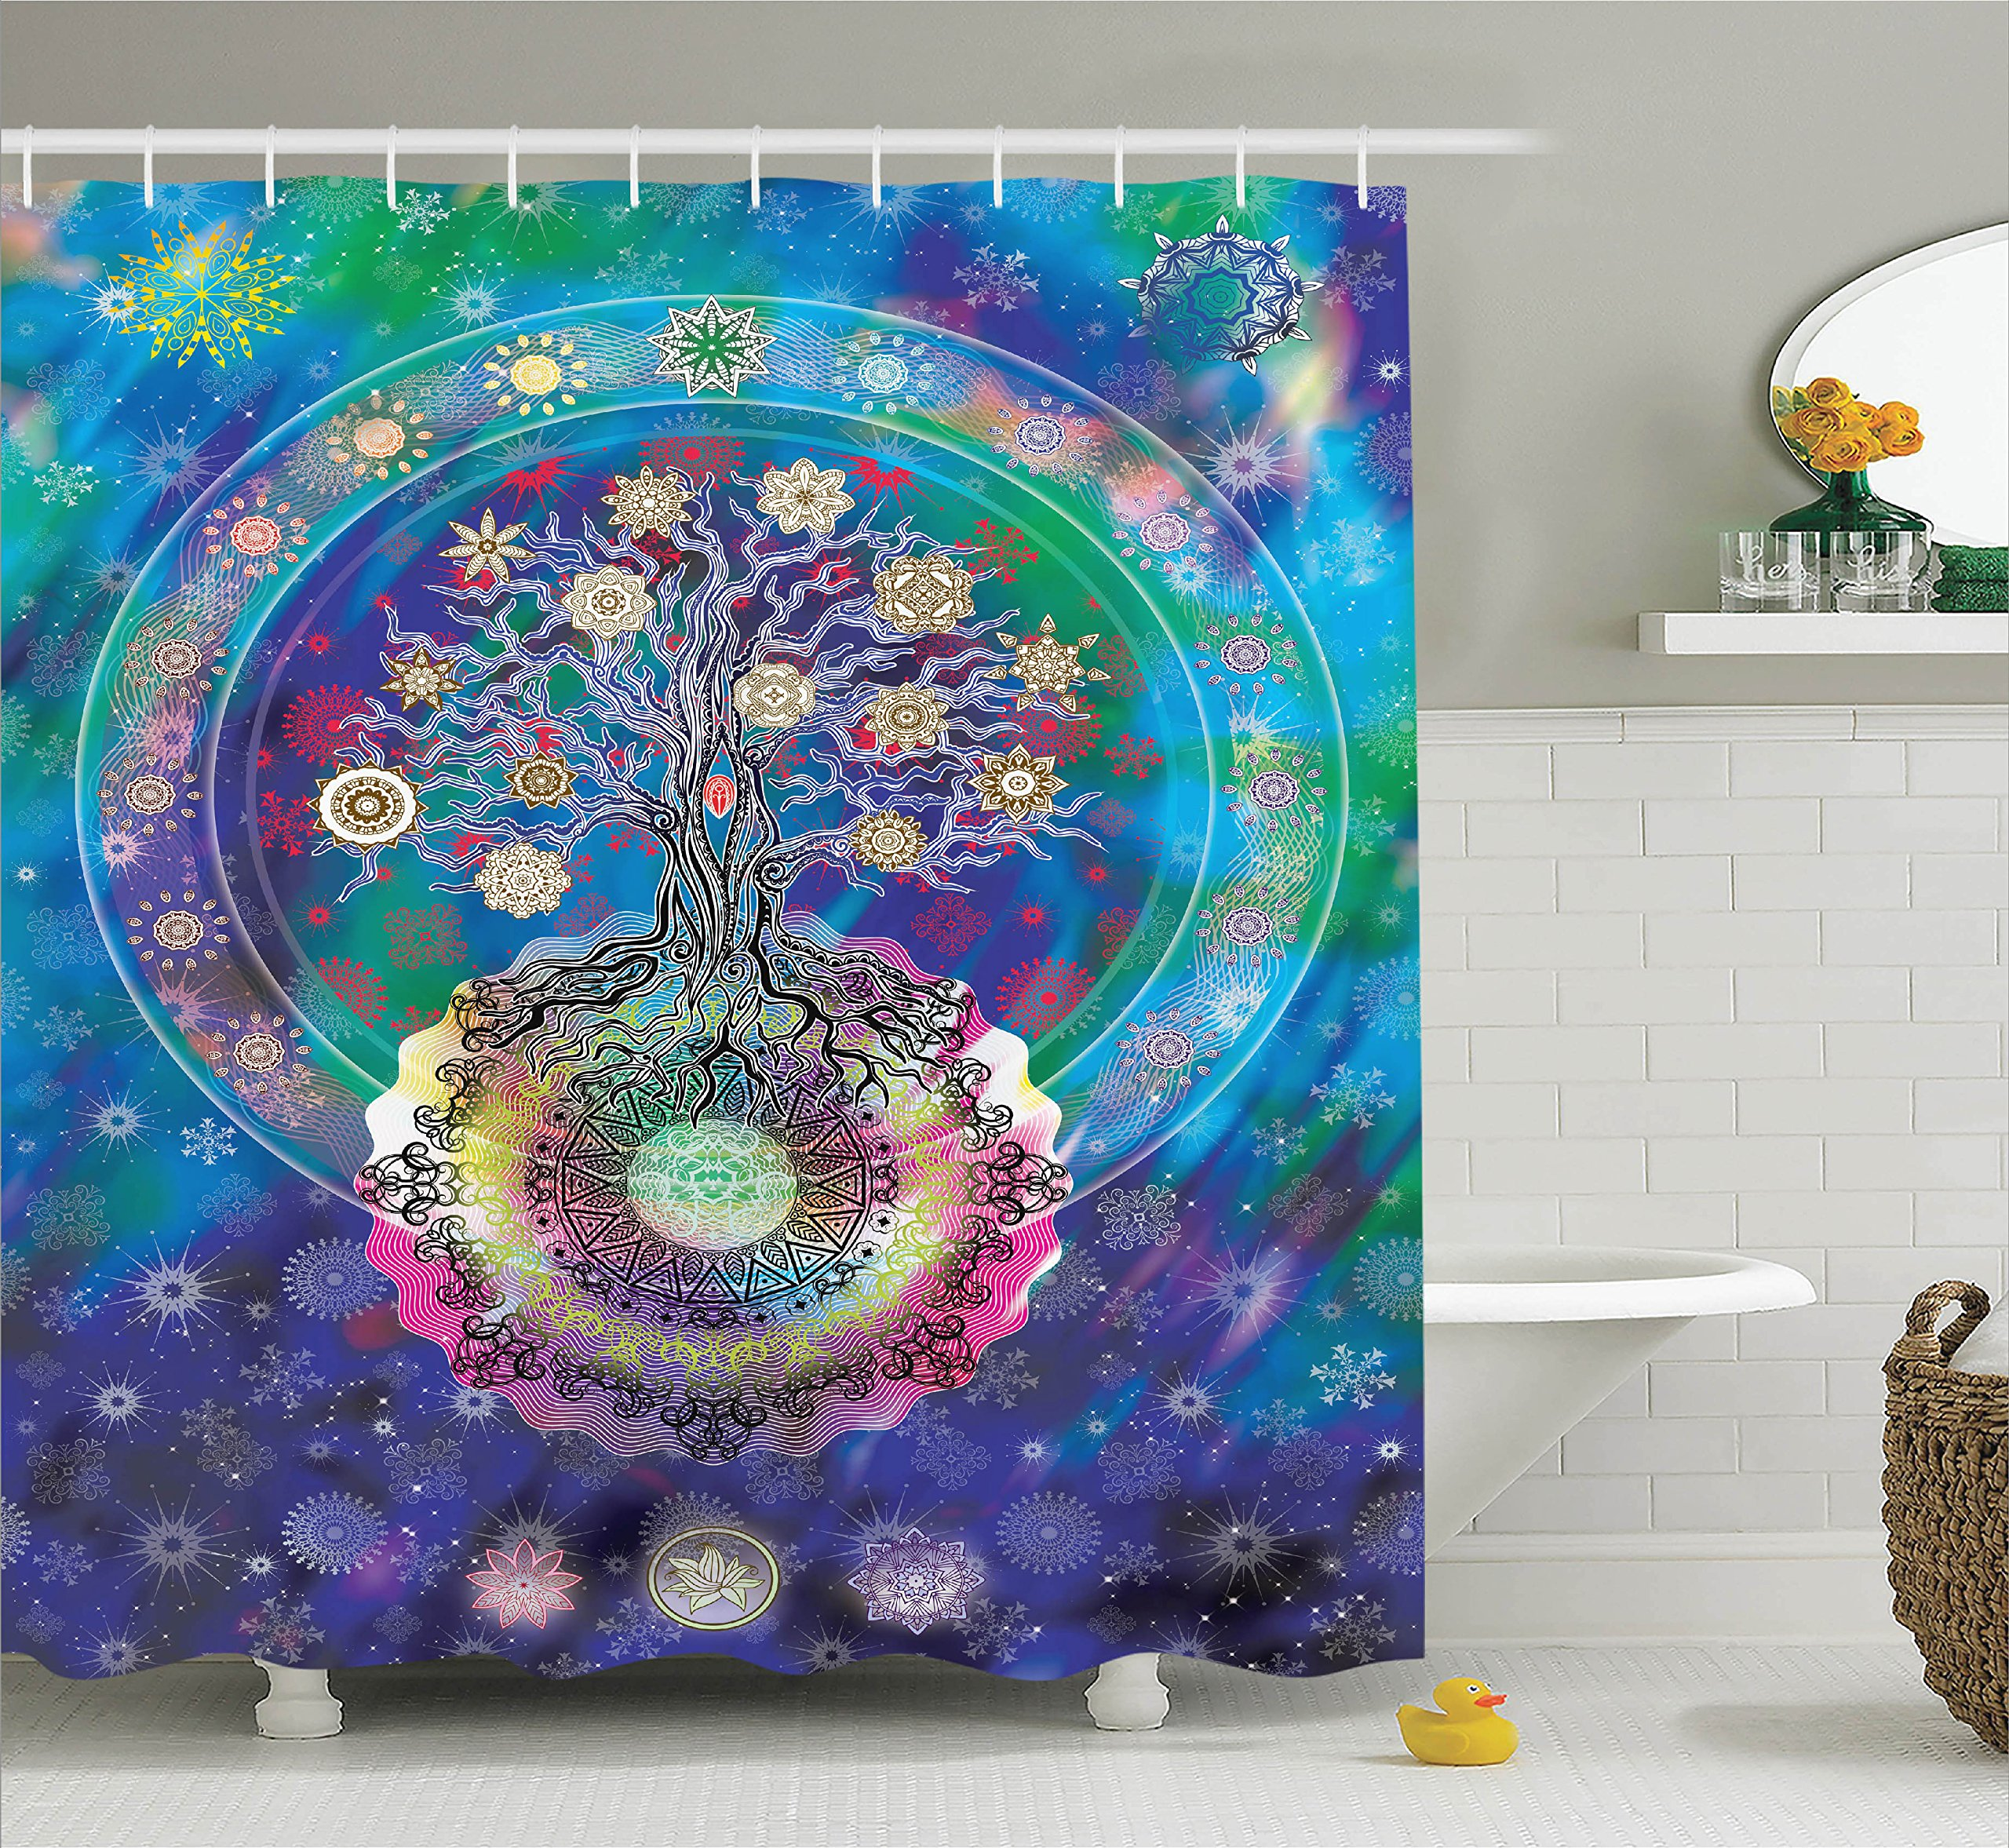 Ambesonne Home Decor Collection, Tree of Life with Floral Style Mandala Spiritual Artwork Meditation Peace Spa Design Decor, Polyester Fabric Bathroom Shower Curtain Set with Hooks, Blue Purple